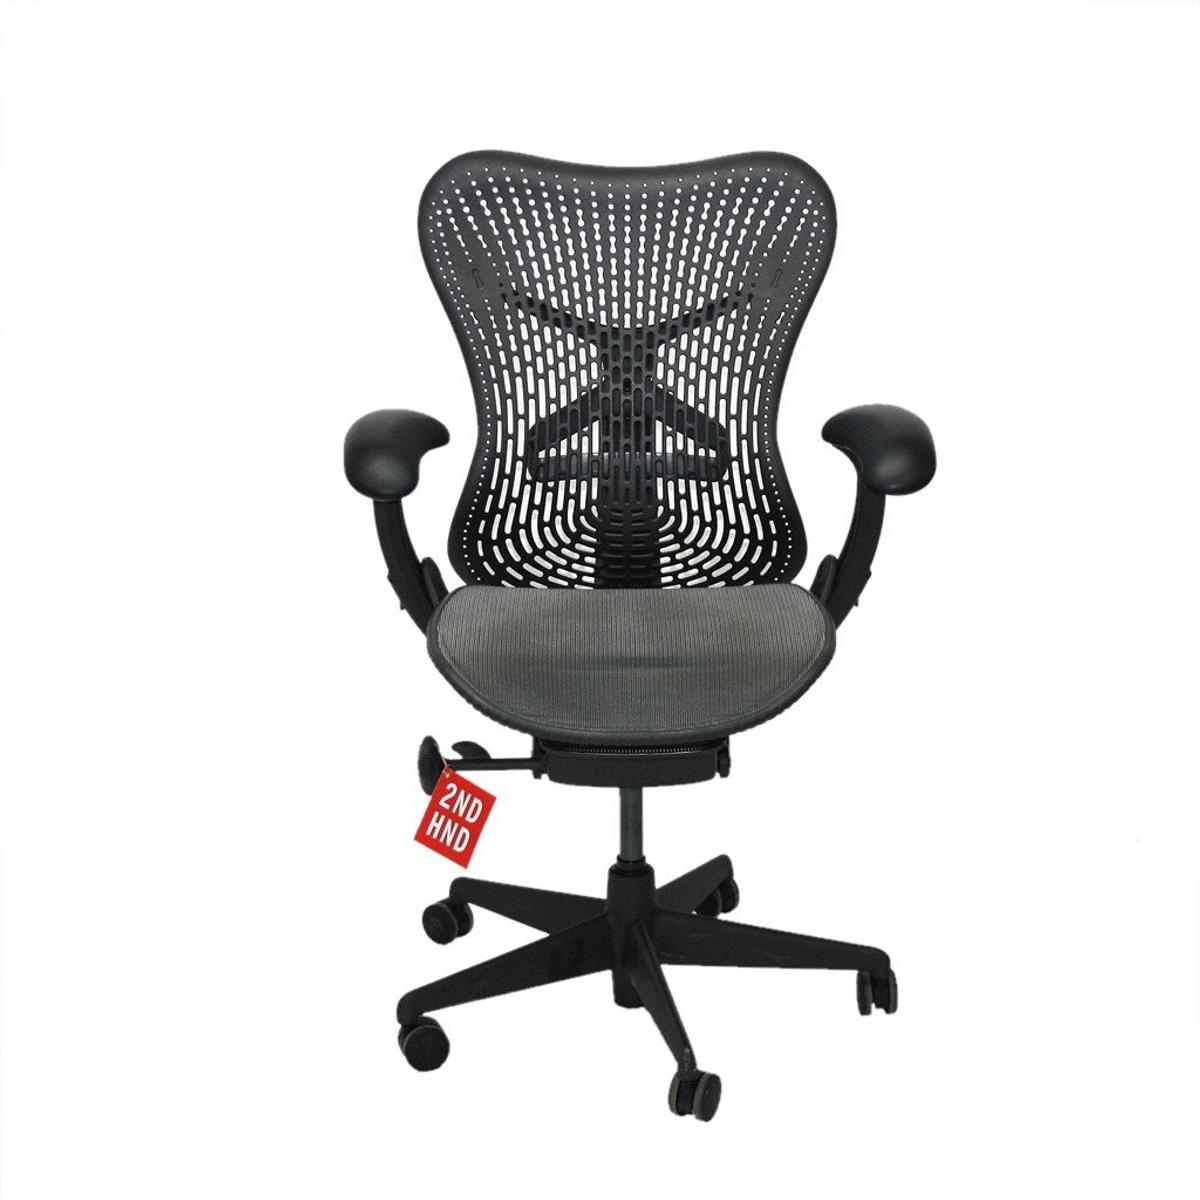 Fantastic Herman Miller Desk Chair Creativecarmelina Interior Chair Design Creativecarmelinacom